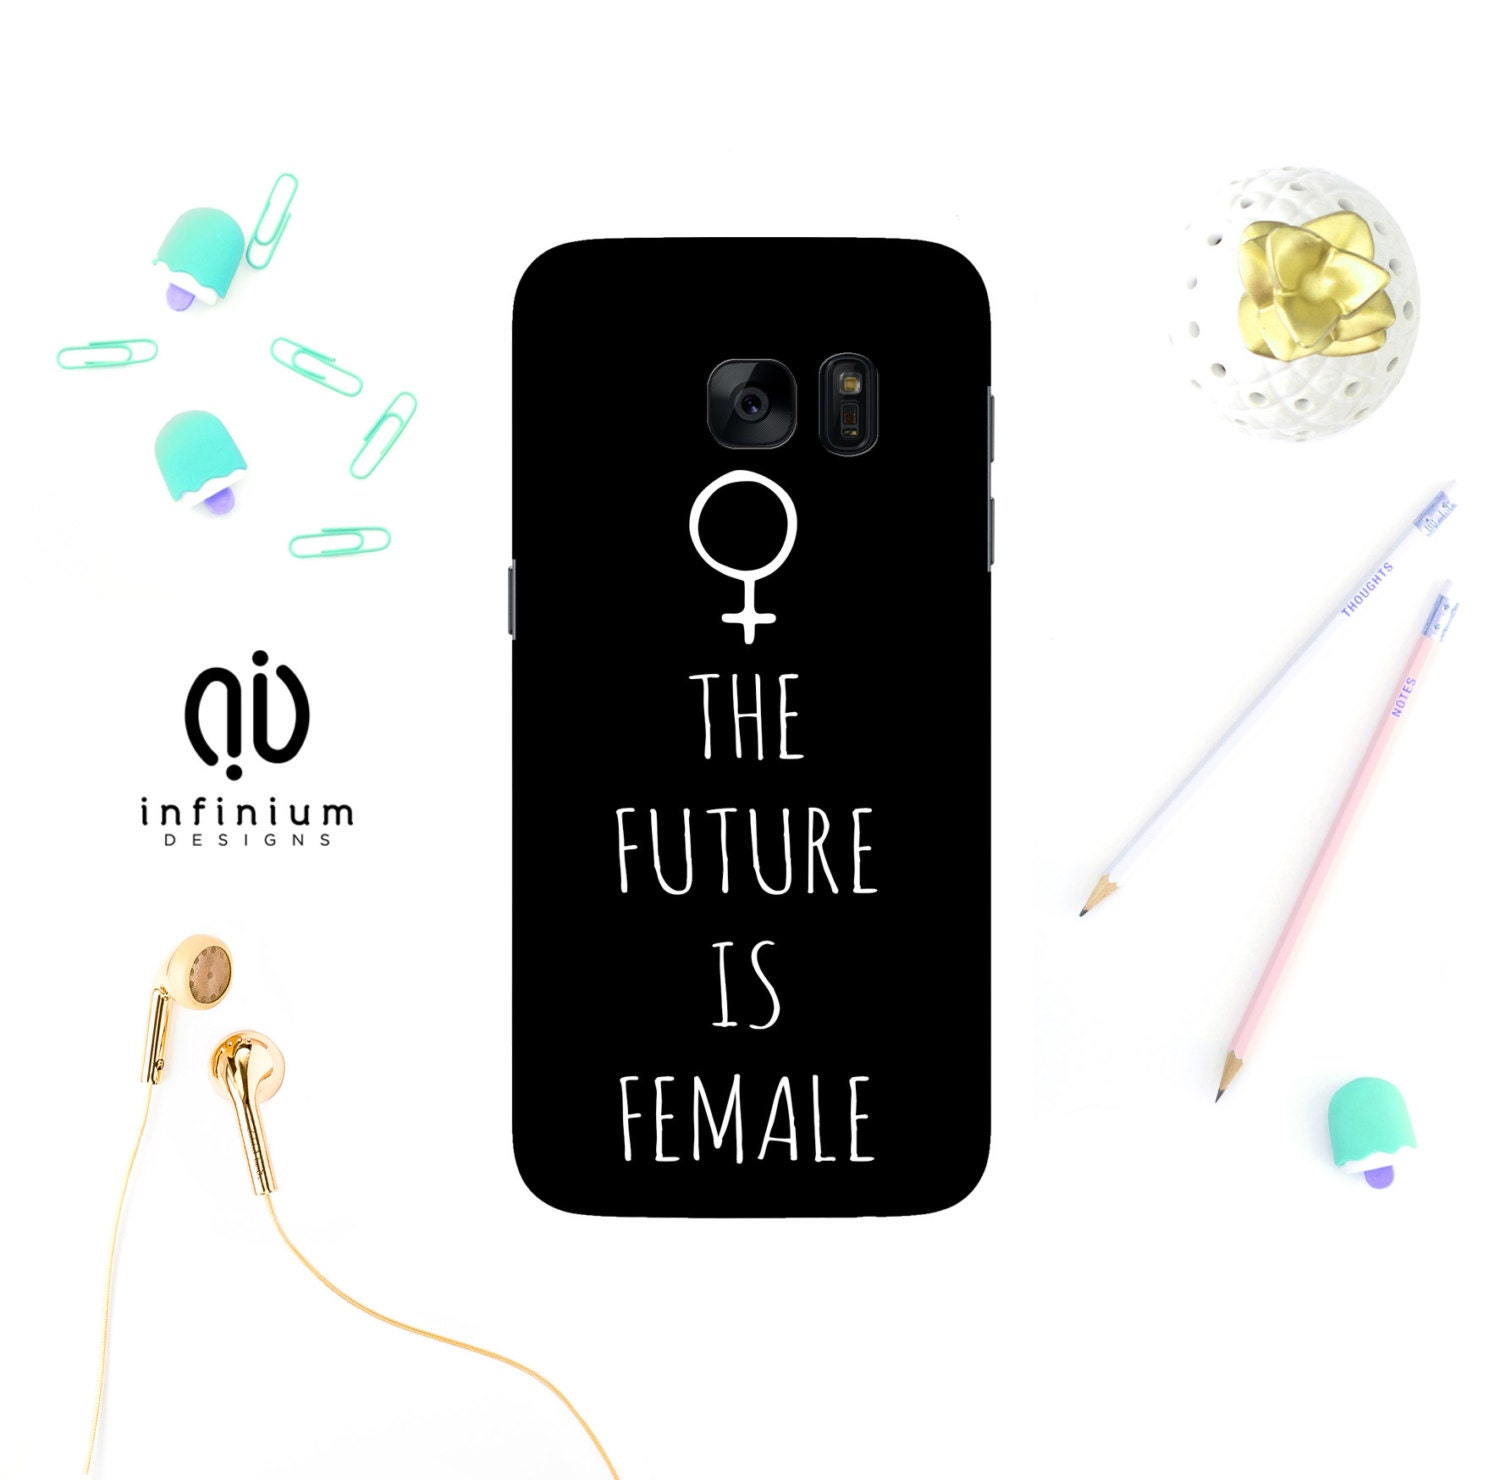 The Future Is Female Case For Samsung S8 Edge iPhone 7 7 Plus 6S 6 Plus SE 5S Samsung S8 S7 S7 Edge Galaxy A3 Galaxy J3 A5  A5